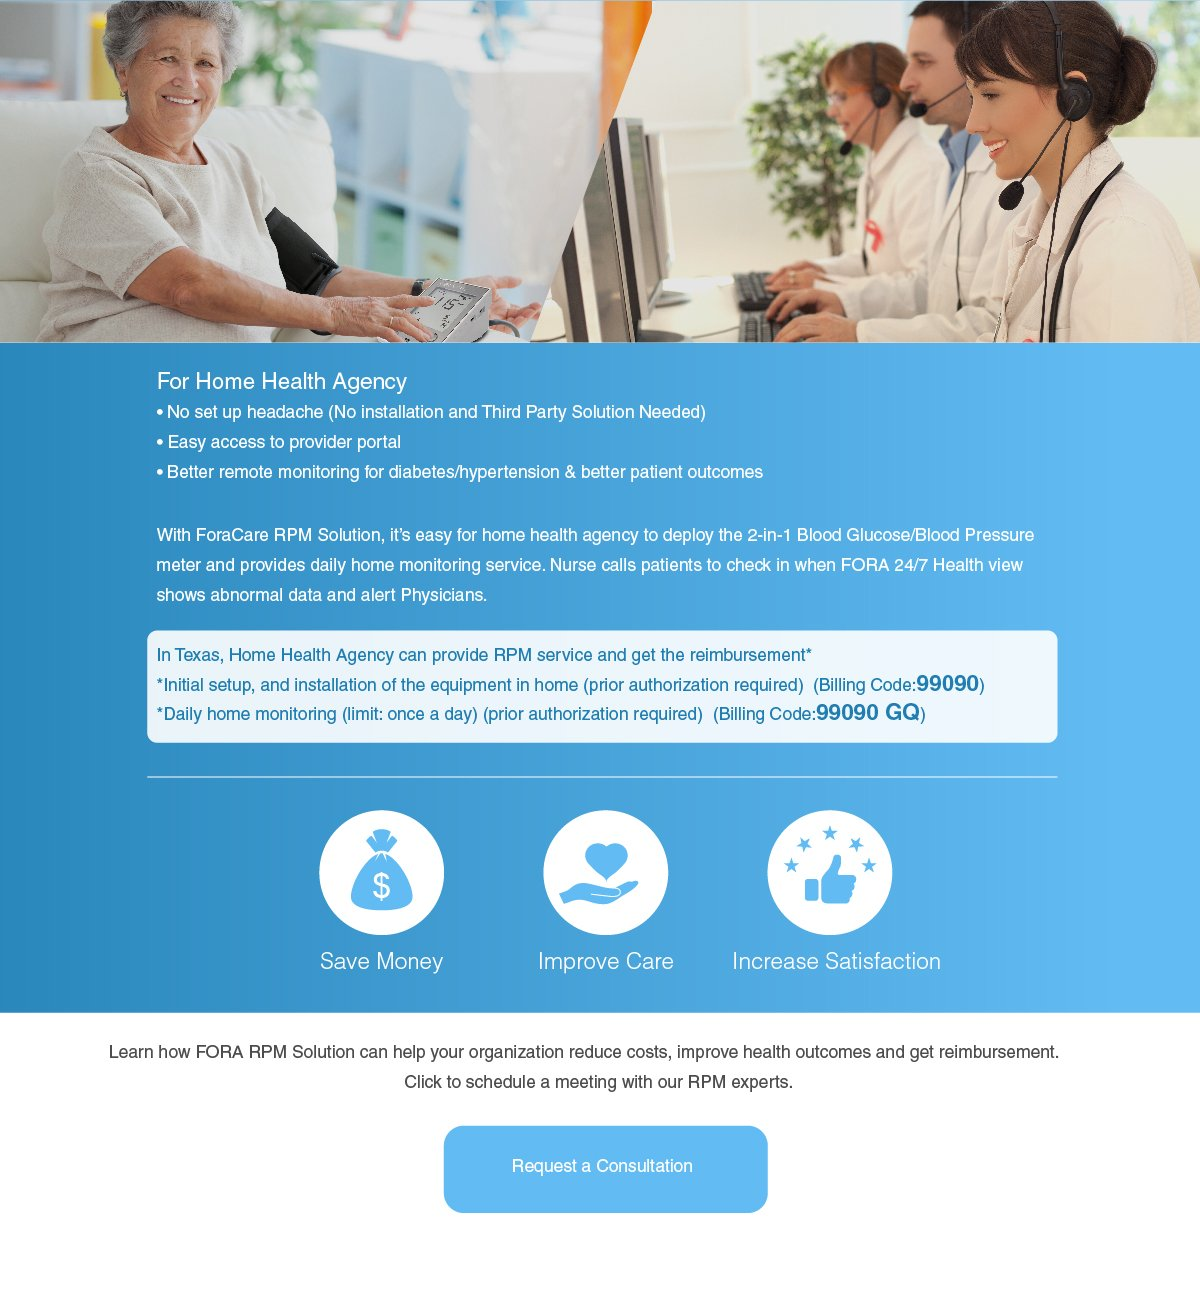 Home Health Agency RPM solution